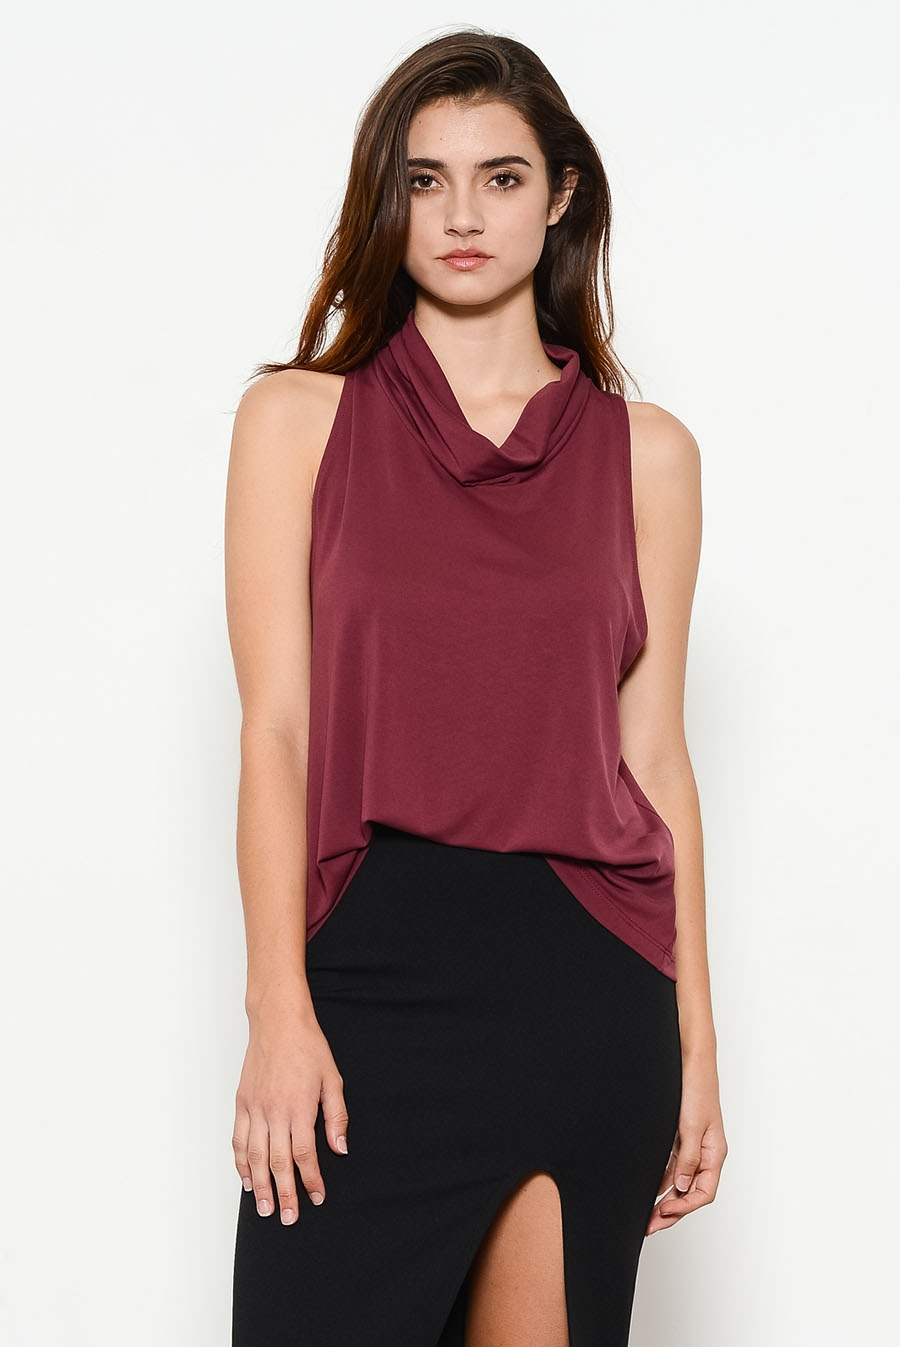 JERSEY MOCK NECK CUTOUT BACK - orangeshine.com